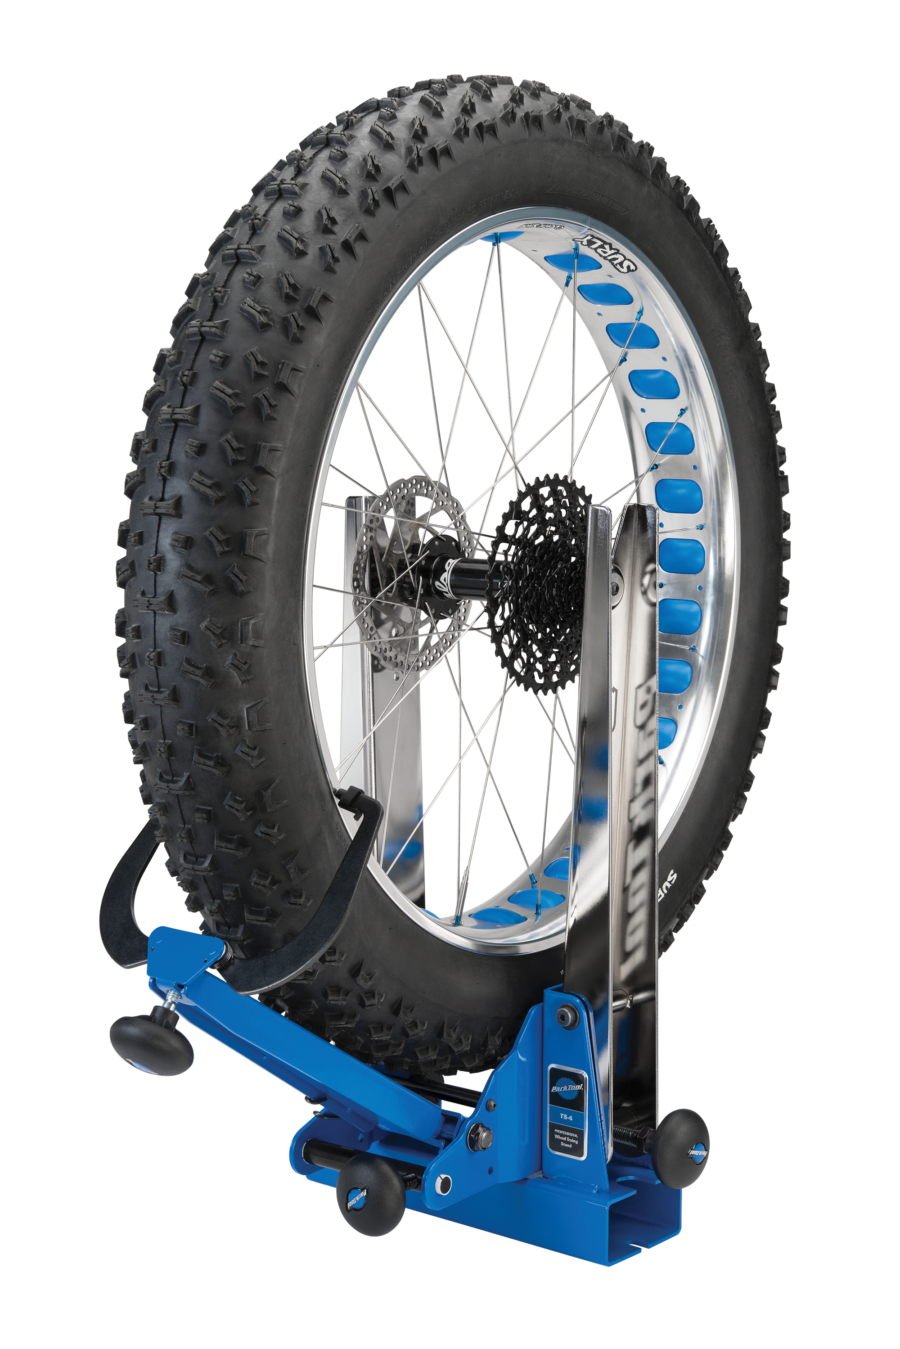 TS-4 Professional Wheel Truing Stand | Park Tool